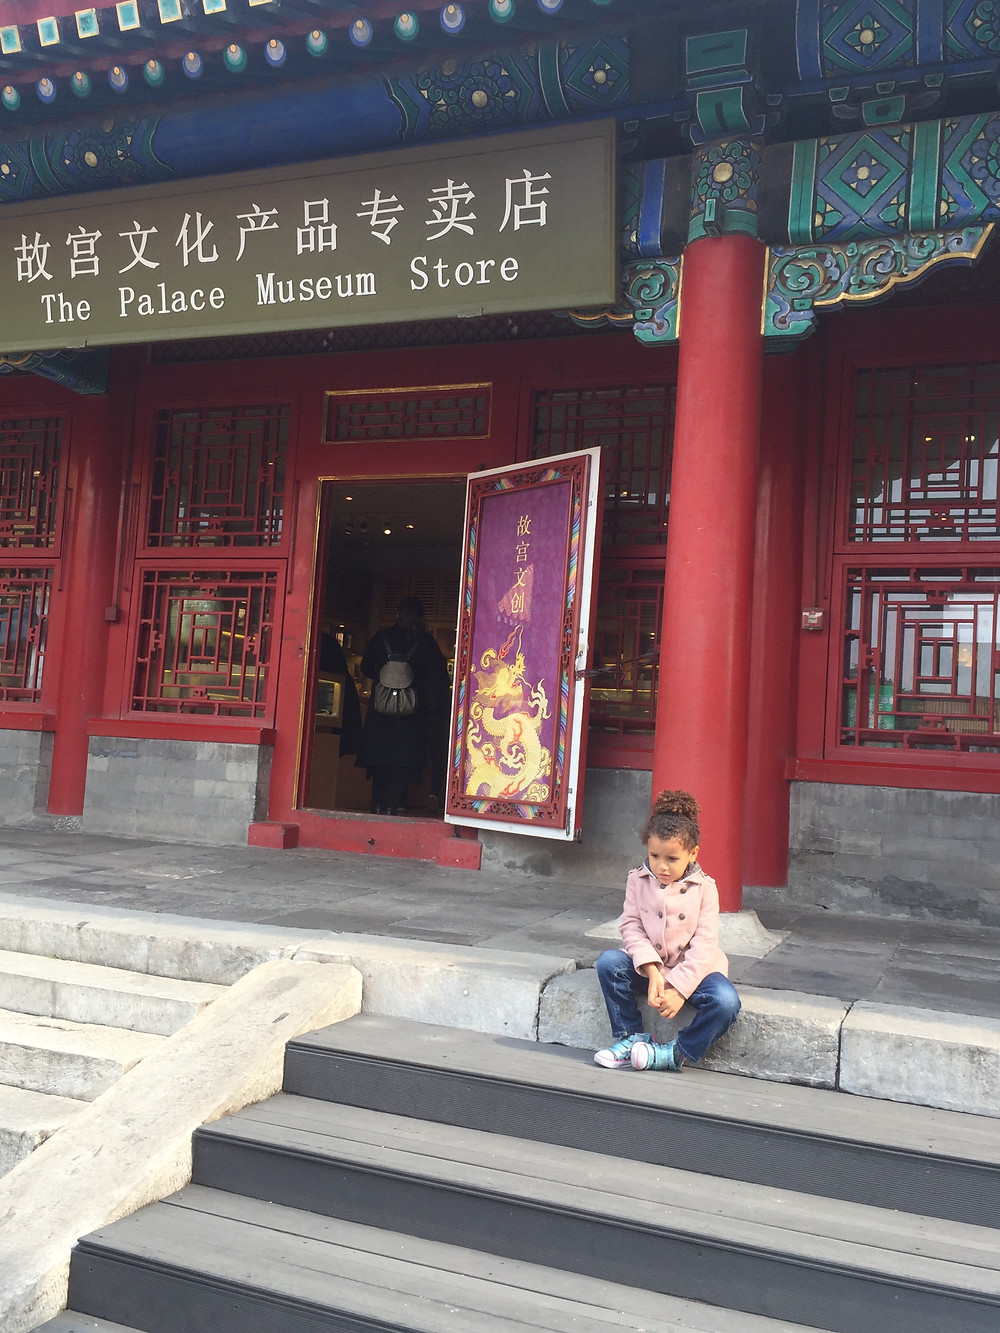 palace museum store